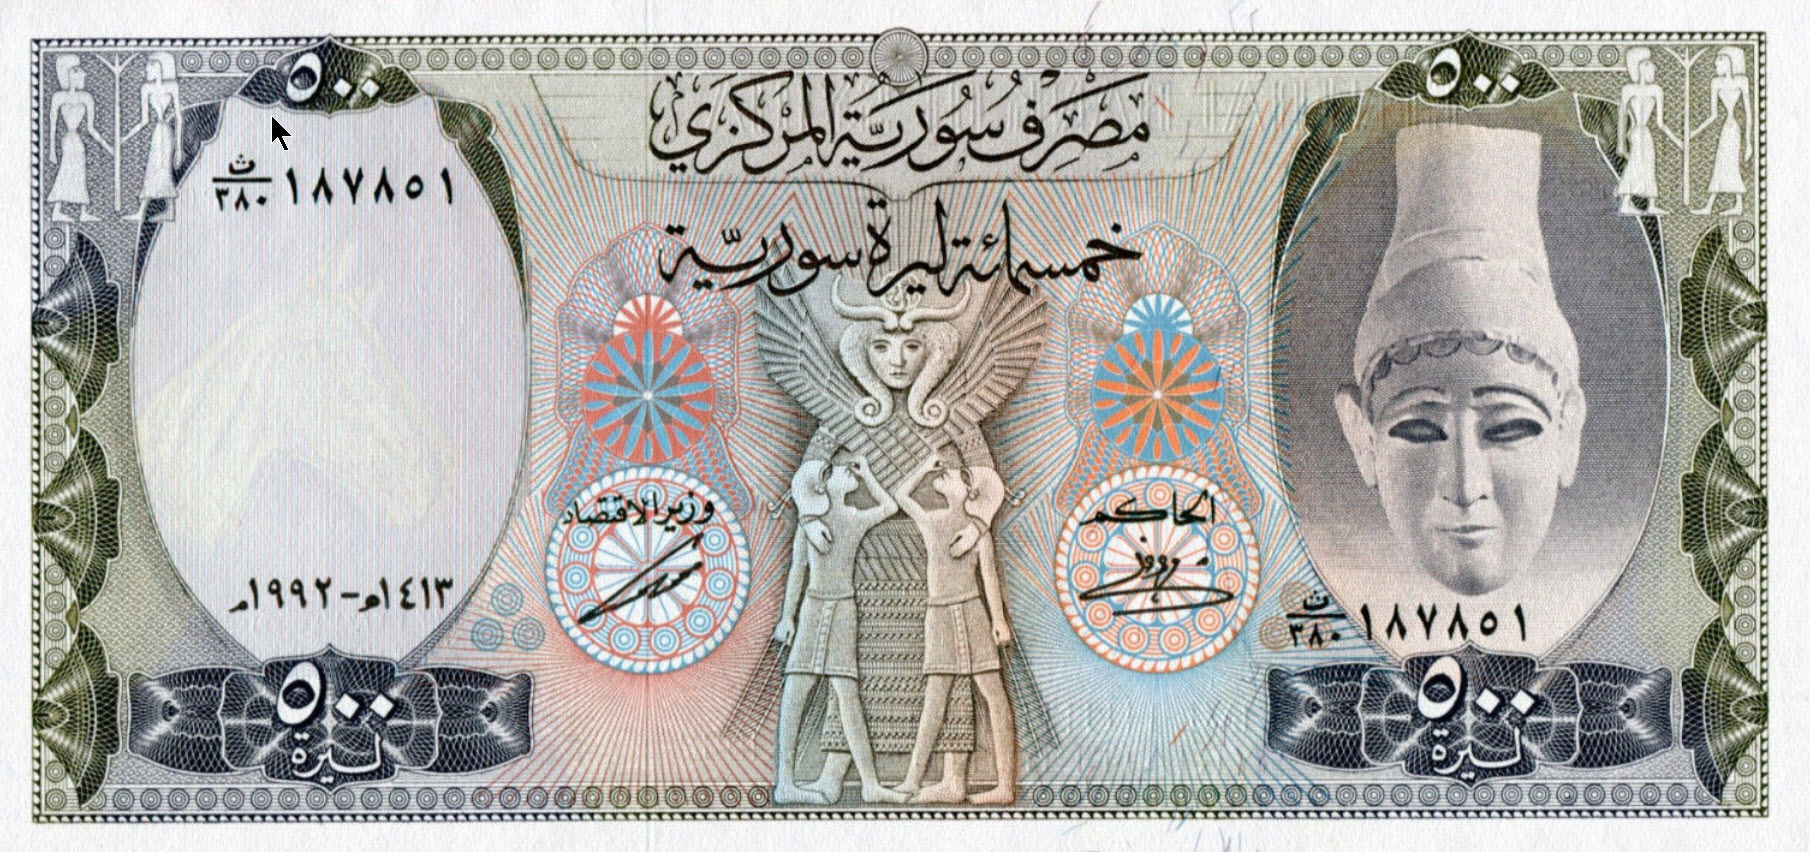 (439) Syria P105f - 500 Pounds Year 1992